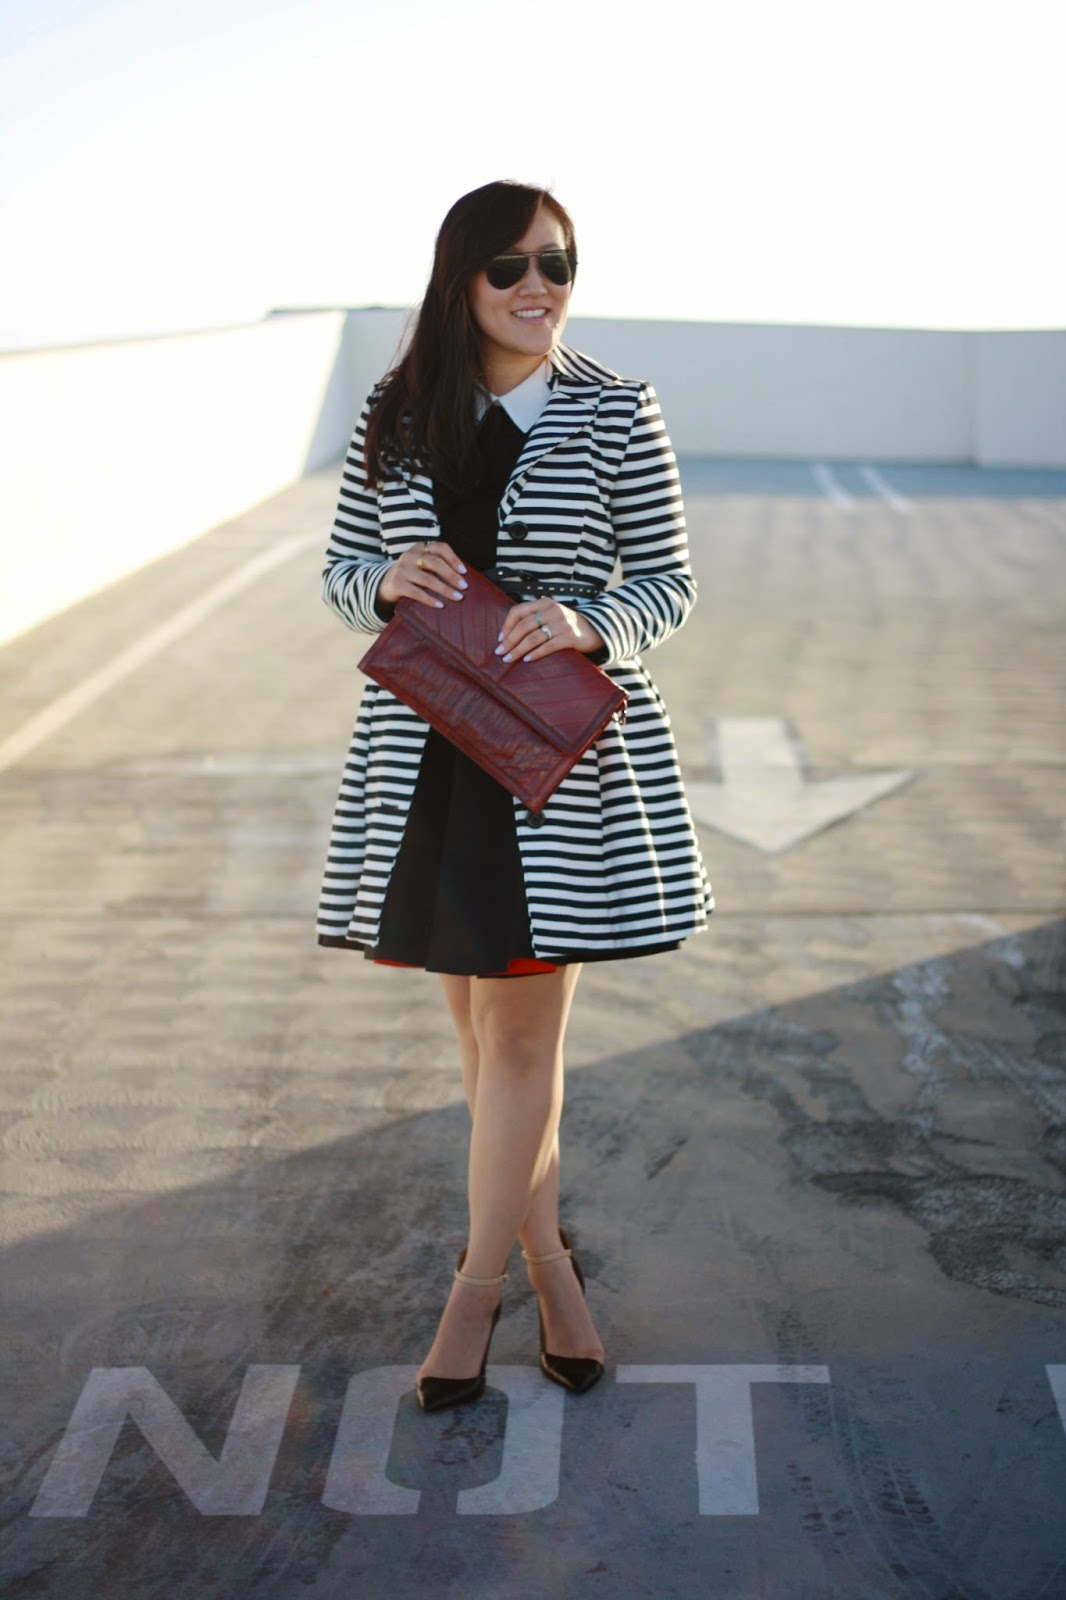 simplyxclassic, orange county blogger, fashion blogger, striped trench coat, fashion week, OCFW